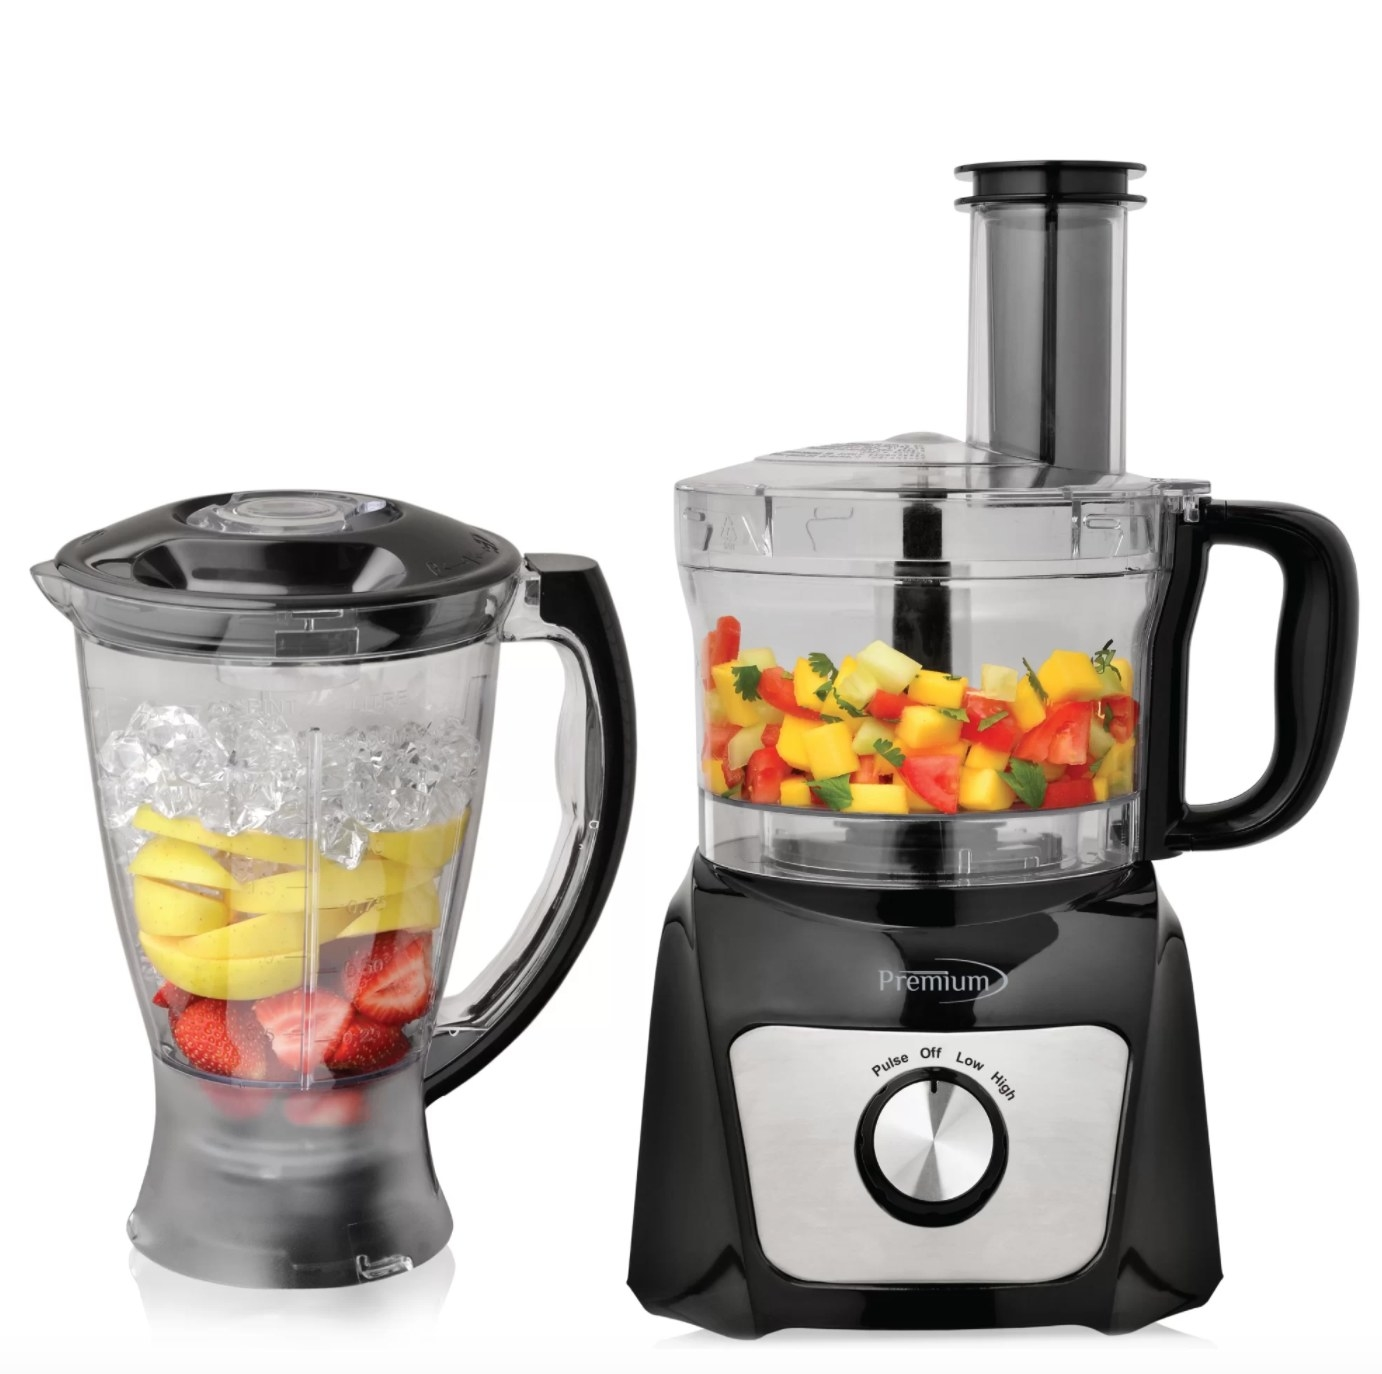 The blender food processor combo